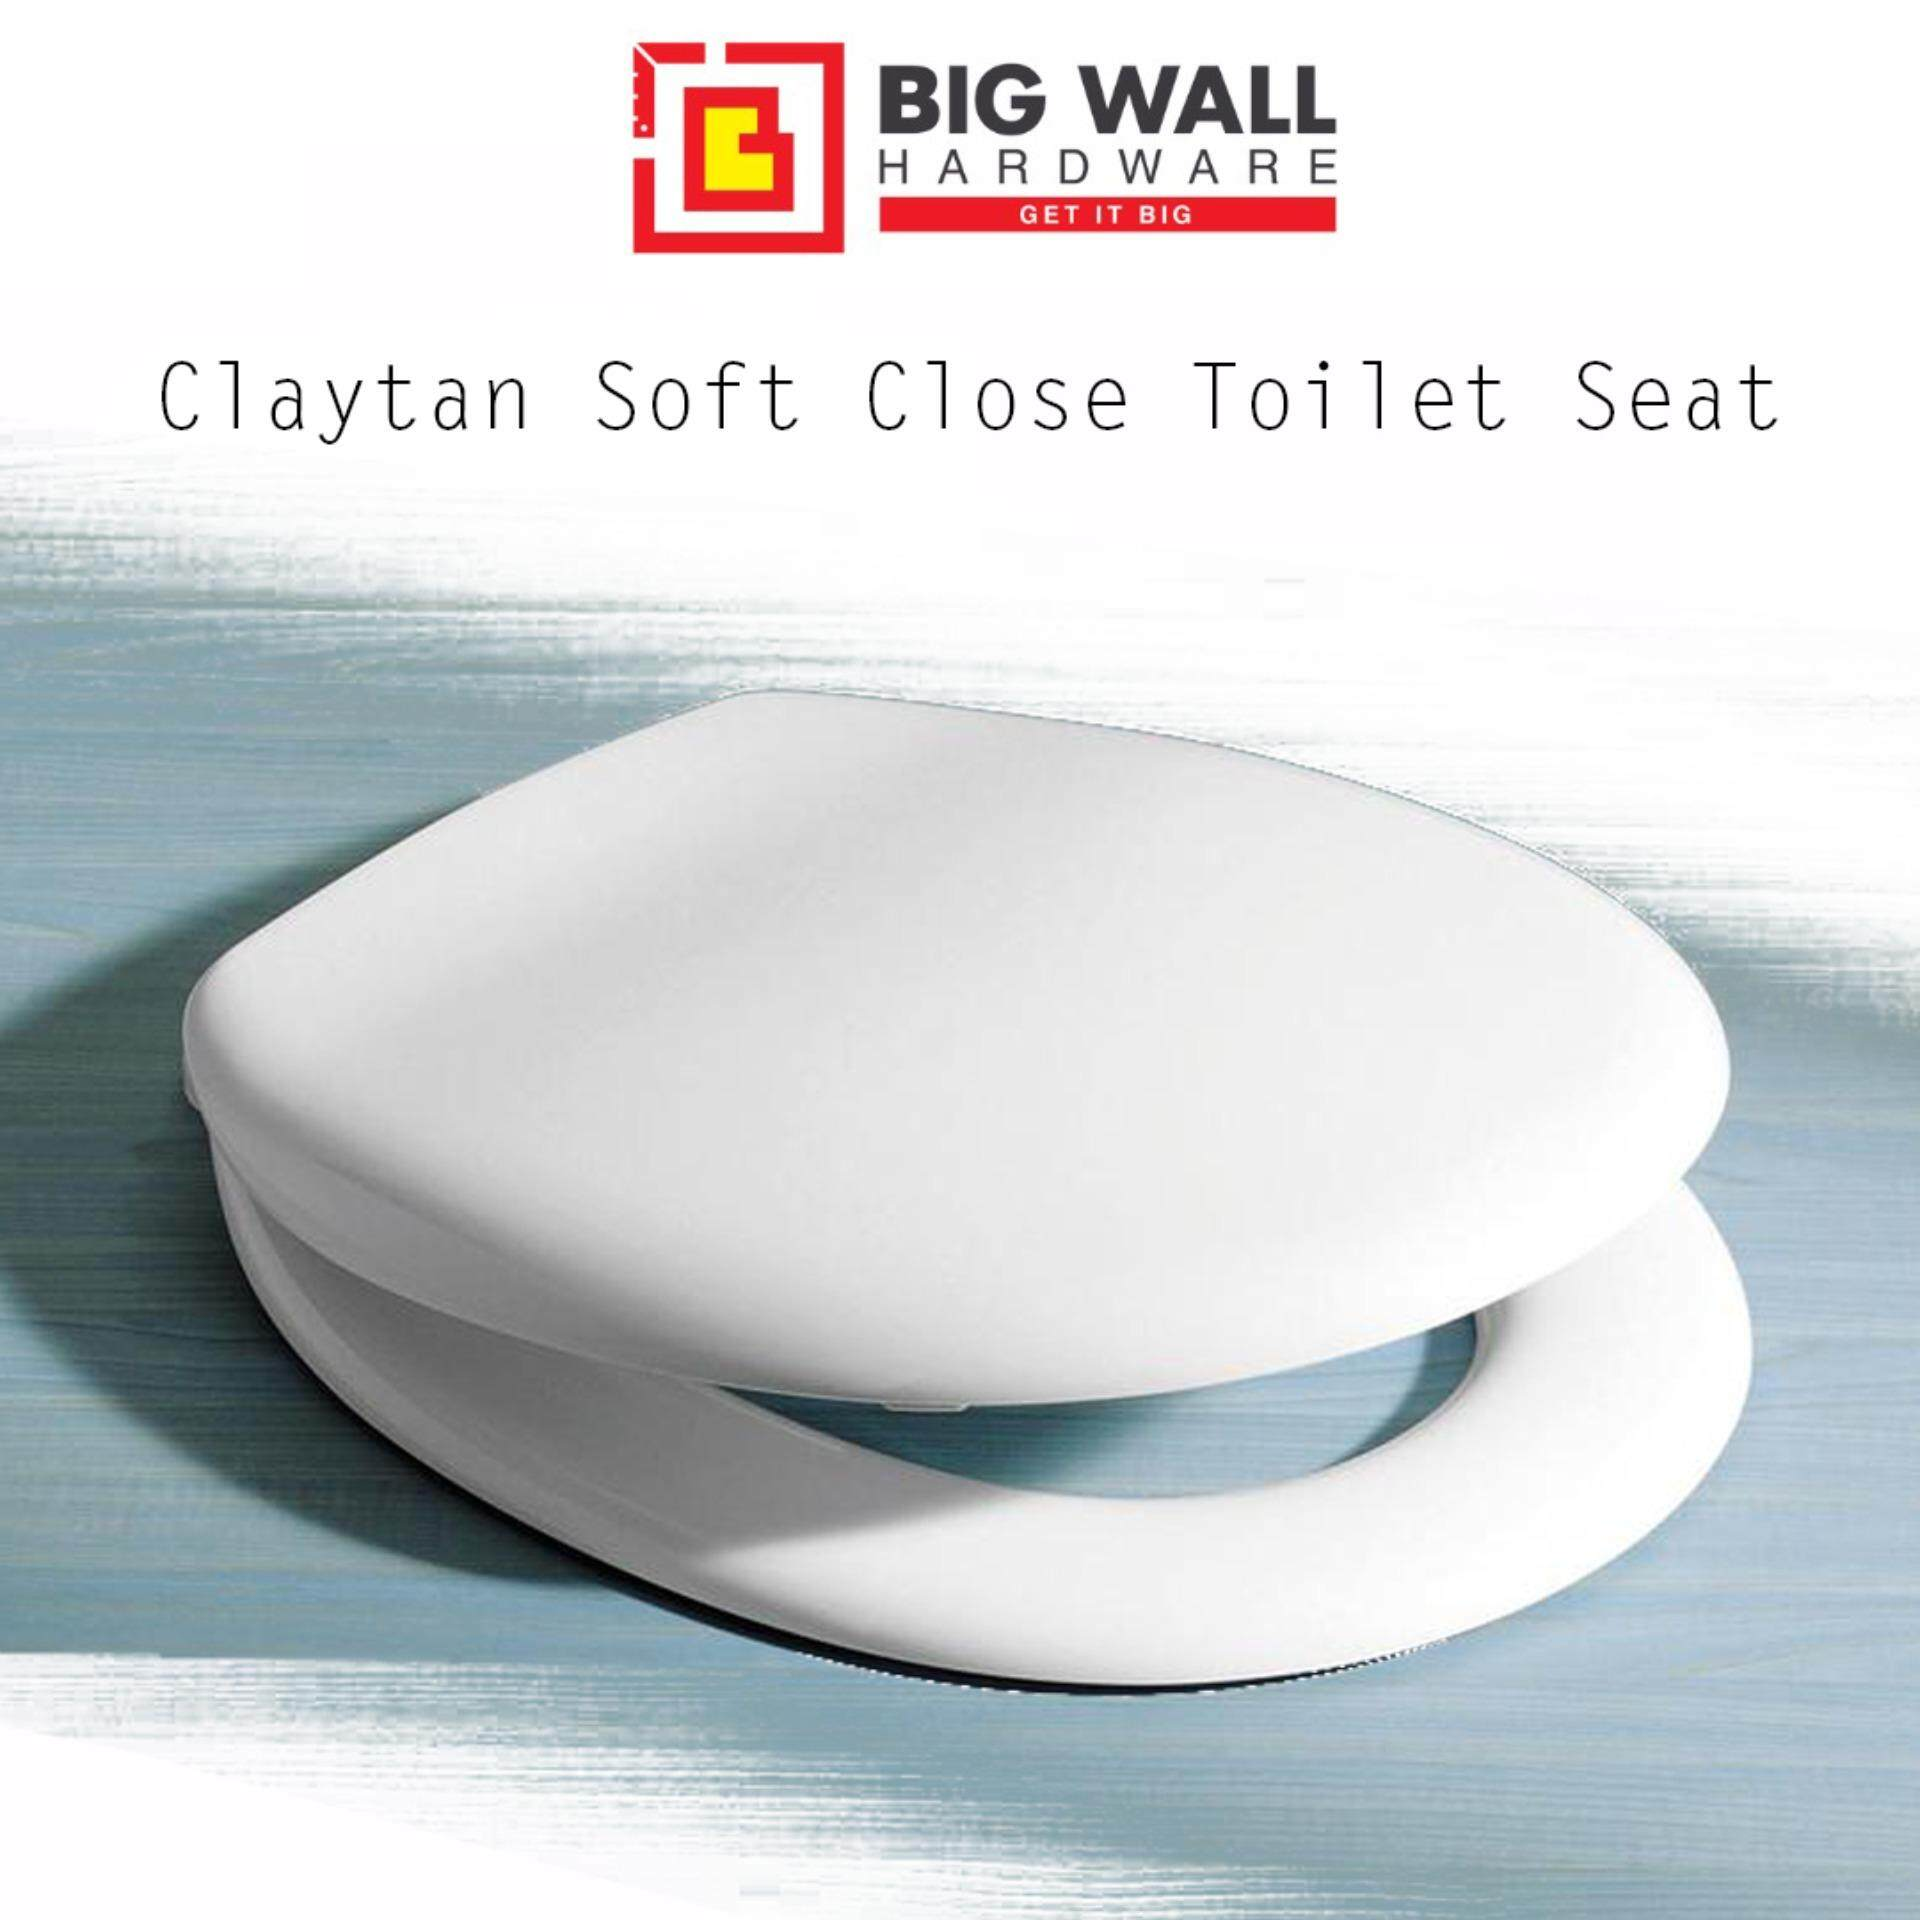 Popular Claytan Cookware For The Best Prices In Malaysia